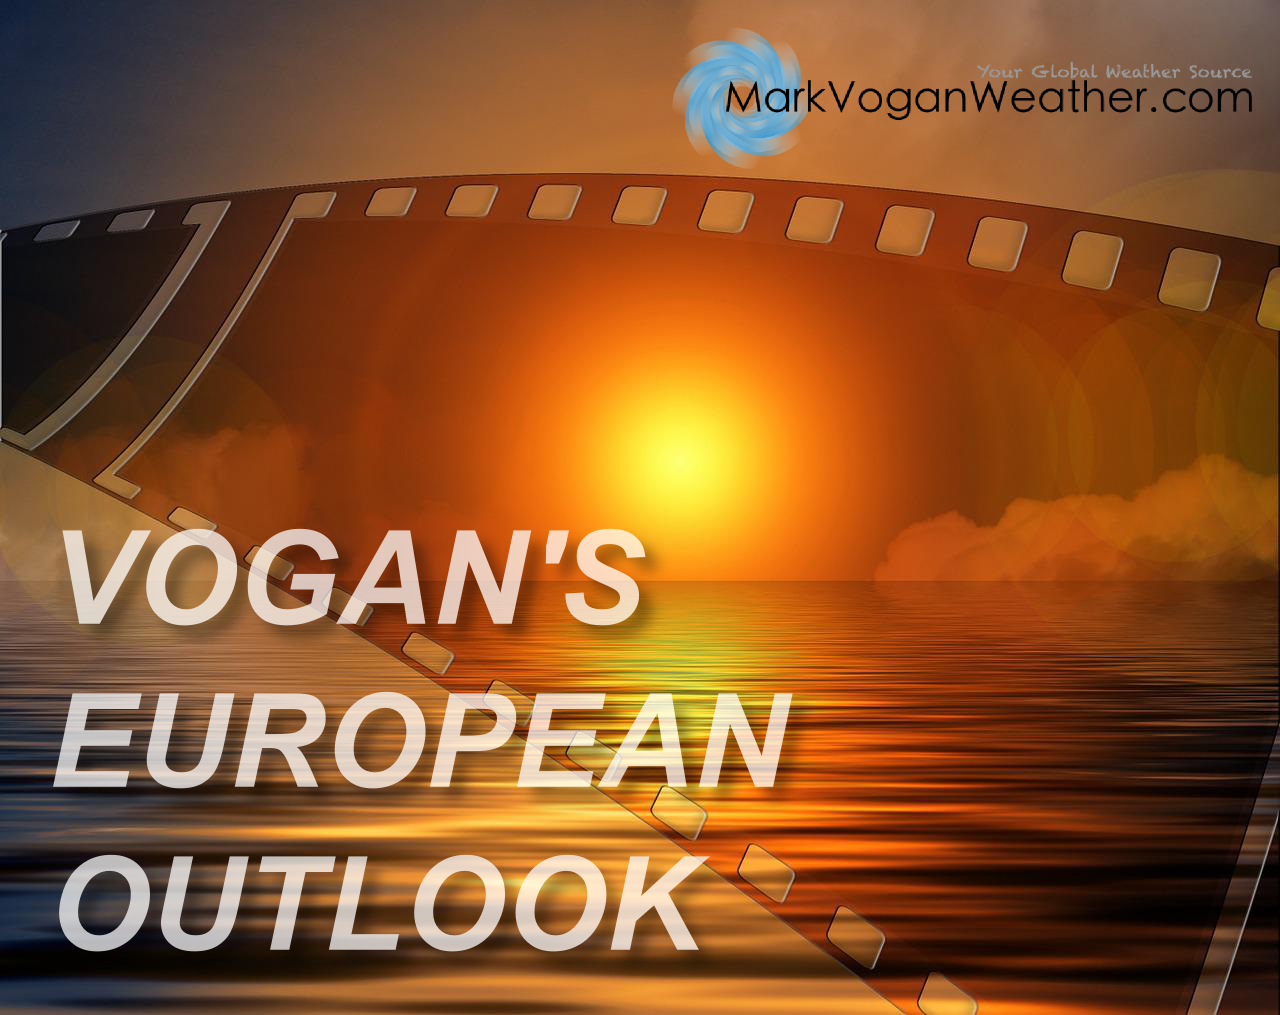 FRI 28 MAR: VOGAN'S EUROPEAN OUTLOOK